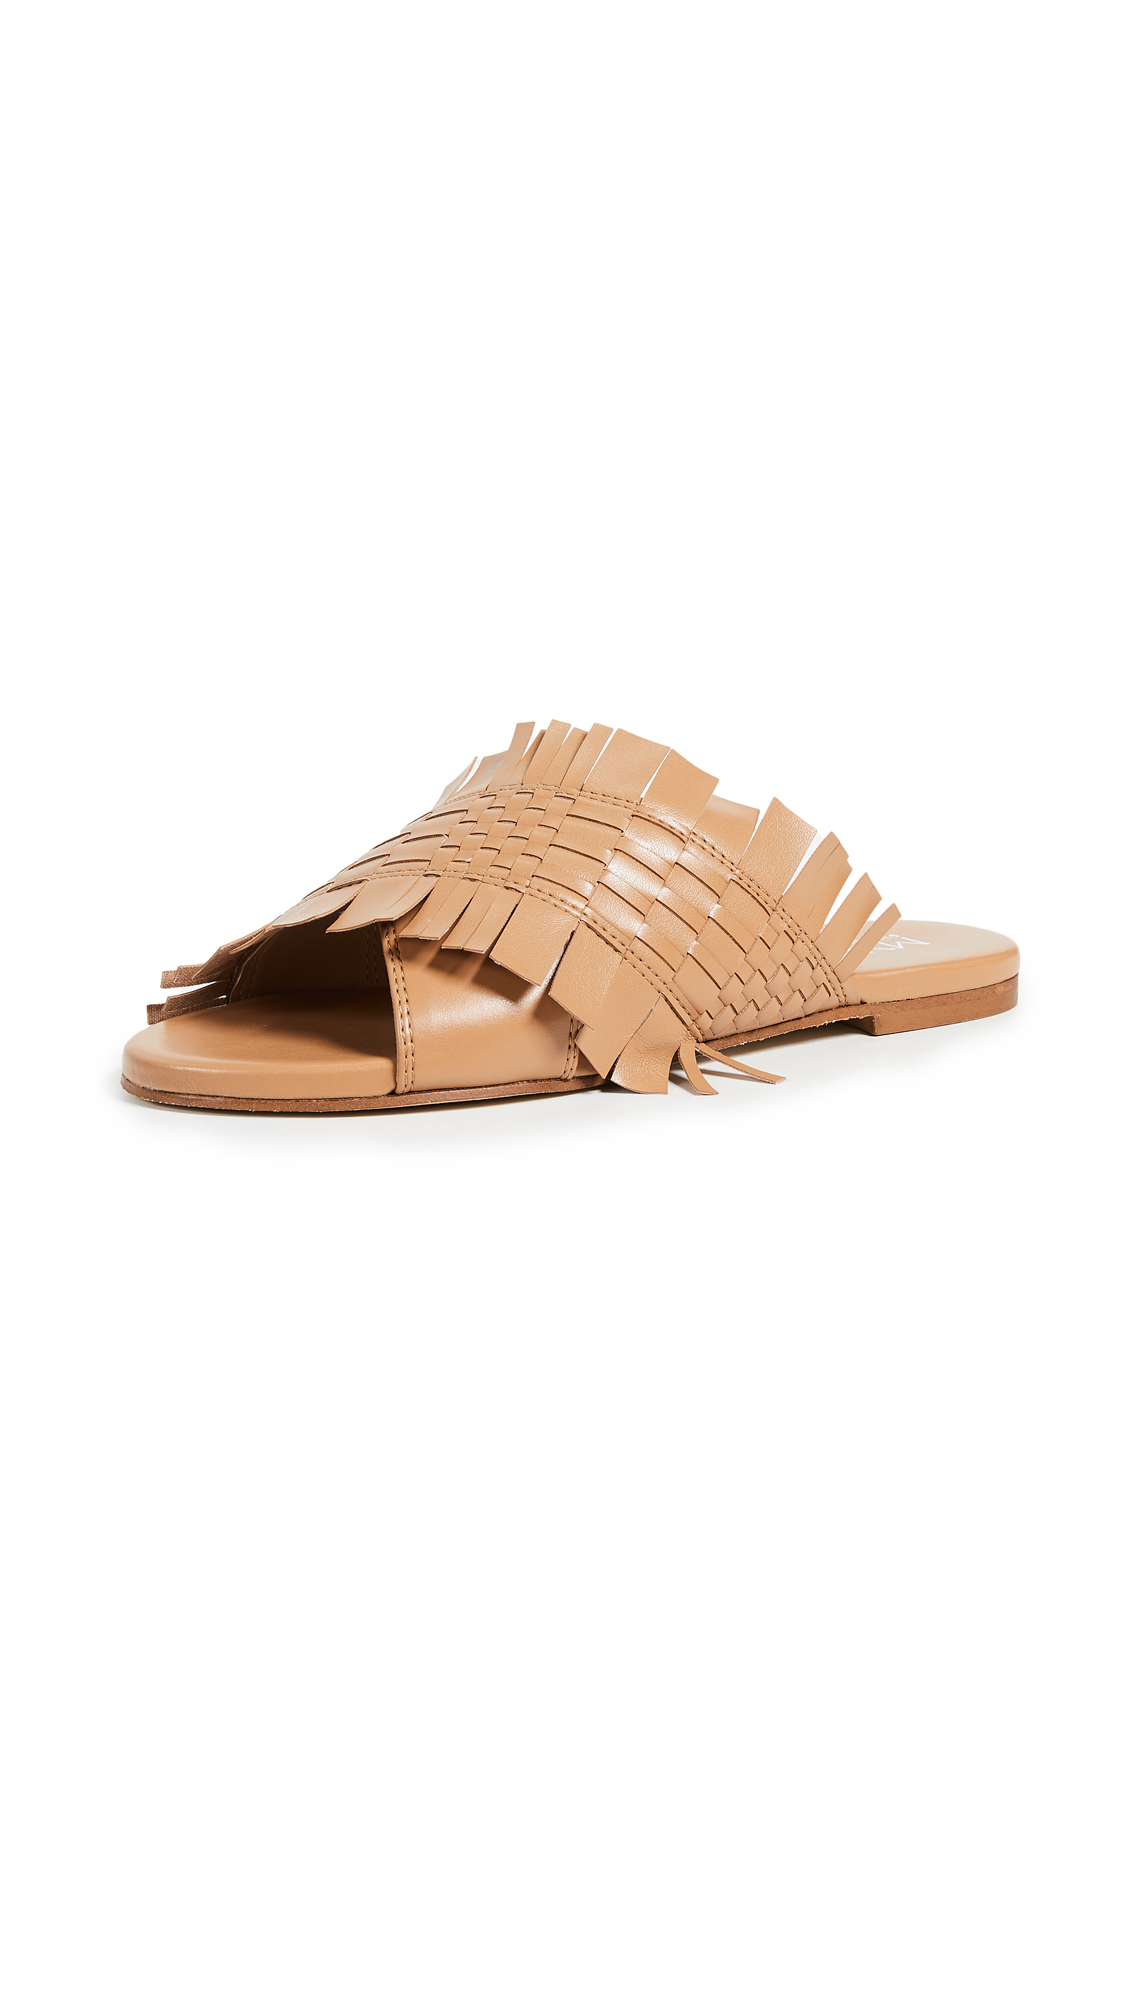 Greymer Happy Woven Slides - Soft Cuoio